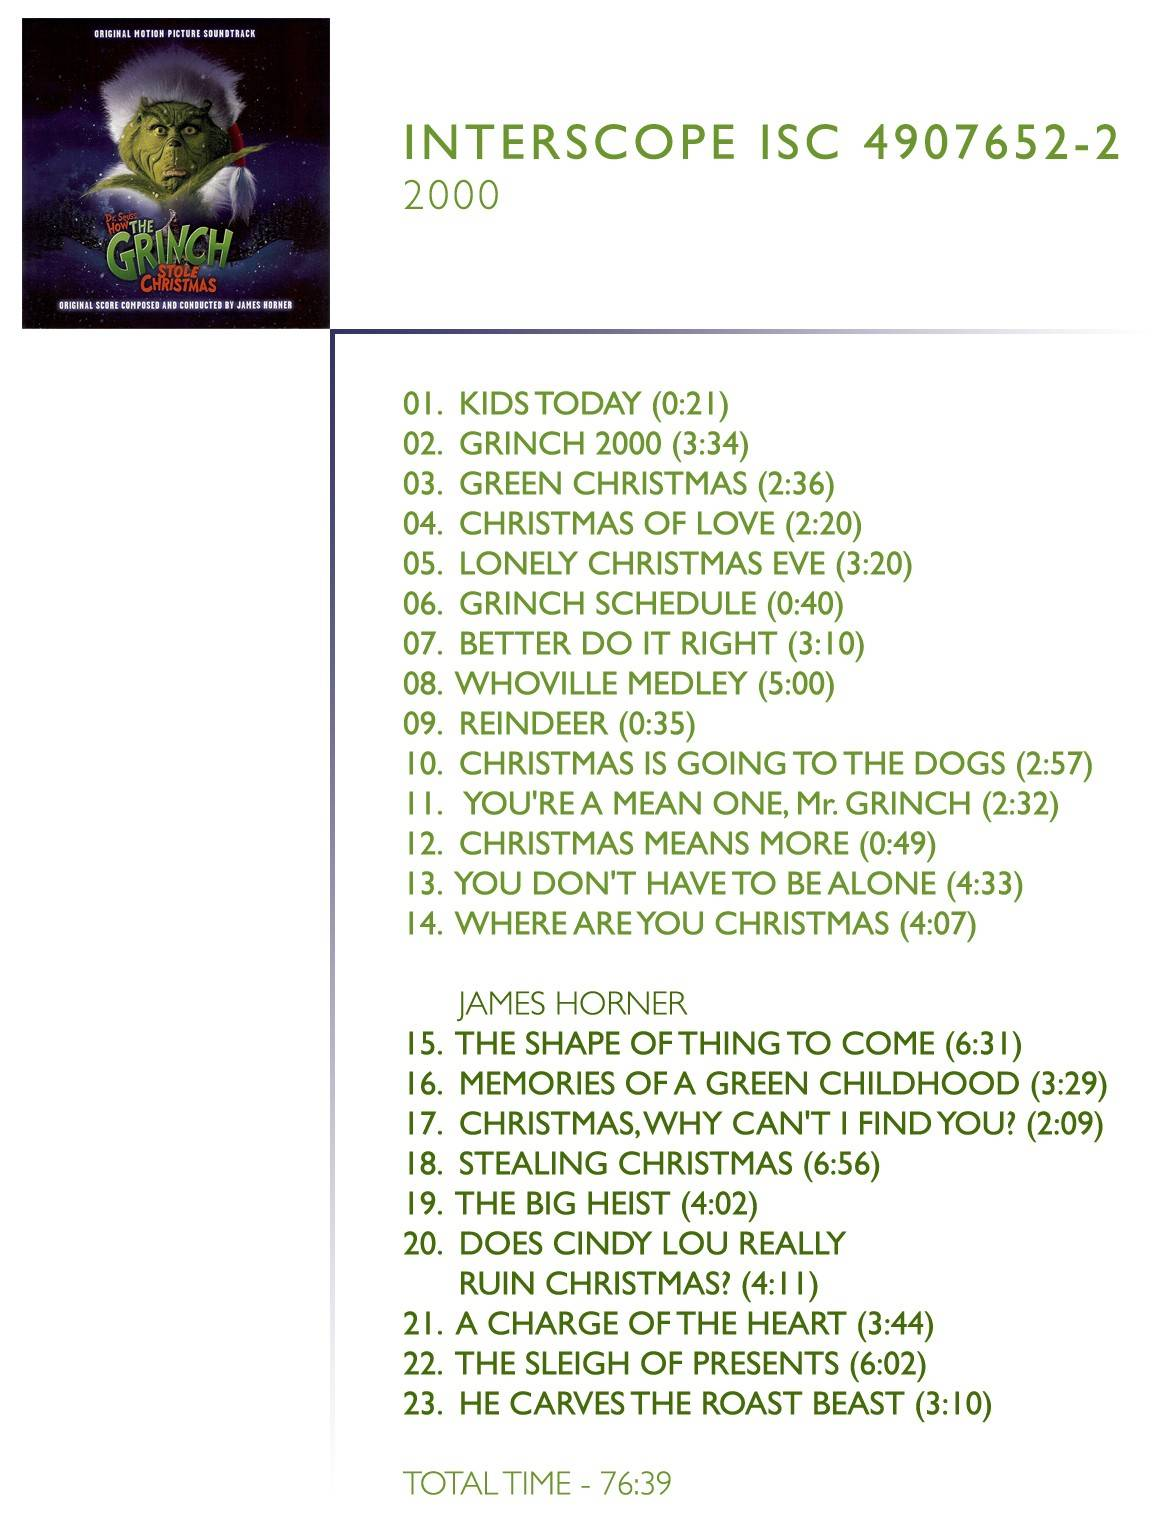 "1.  	Kids Today Movie Dialogue By ""Jim carrey And Taylor Momsen"" 2.  	Grinch 2000 Performed By ""Busta Rhymes & Jim Carrey"" 3.  	Green Christmas Performed By ""Barenaked Ladies 4.  	Christmas Of Love Performed By ""Little Isidor And The Inquisitors"" 5.  	Lonely Christmas Eve Performed By ""Ben Folds"" 6.  	Grinch Schedule Movie Dialogue By ""Jim Carrey"" 7.  	Better Do It Right Performed By ""Smash Mouth"" 8.  	Whoville Medley (Perfect Christmas Night/Grinch) Performed By ""trans-Siberian Orchestra"" 9.  	Reindeer Movie Dialogue By ""Jim Carrey"" 10.  	Christmas Is Going To The Dogs Performed By ""The Eels"" 11.  	You're A MEan One, Mr. Grinch Performed By ""Jim Carrey"" 12.  	Christmas Means More Movie Dialogue By ""Jim Carrey And Anthony Hopkins"" 13.  	You Don't Have To Be Alone Performed By ""'N Sync"" 14.  	Where Are You Christmas Performed By ""Faith Hill"" 15.  	The Shape Of Thing To Come Composed By ""James Horner"", Includes ""Happy Who-Lidays"", Written By ""James Horner And Cynthia Weil 16.  	Memories Of A Green Childhood Composed By ""James Horner"" 17.  	Christmas, Why Can't I Find You? Vocals By ""Taylor Momsen"", Music By ""James Horner"" and Lyrics by ""Will jennings"" 18.  	Stealing Christmas Composed By ""James Horner"", Includes Dialogue By ""Jim Carrey, Anthony Hopkins and Taylor Momsen"", Composed By ""James Horner"" 19.  	The Big Heist Composed By ""James Horner"" 20.  	Does Cindy Lou Really Ruin Christmas? Composed By ""James Horner"" 21.  	A Charge Of The heart Composed By ""James Horner"" 22.  	The Sleigh Of Presents Composed By ""James Horner"" 23.  	He Carves The Roast Beast Composed By ""James Horner"", Includes ""Welcome Christmas"", Written By ""Albert Hague And Theodor S. Geise"""